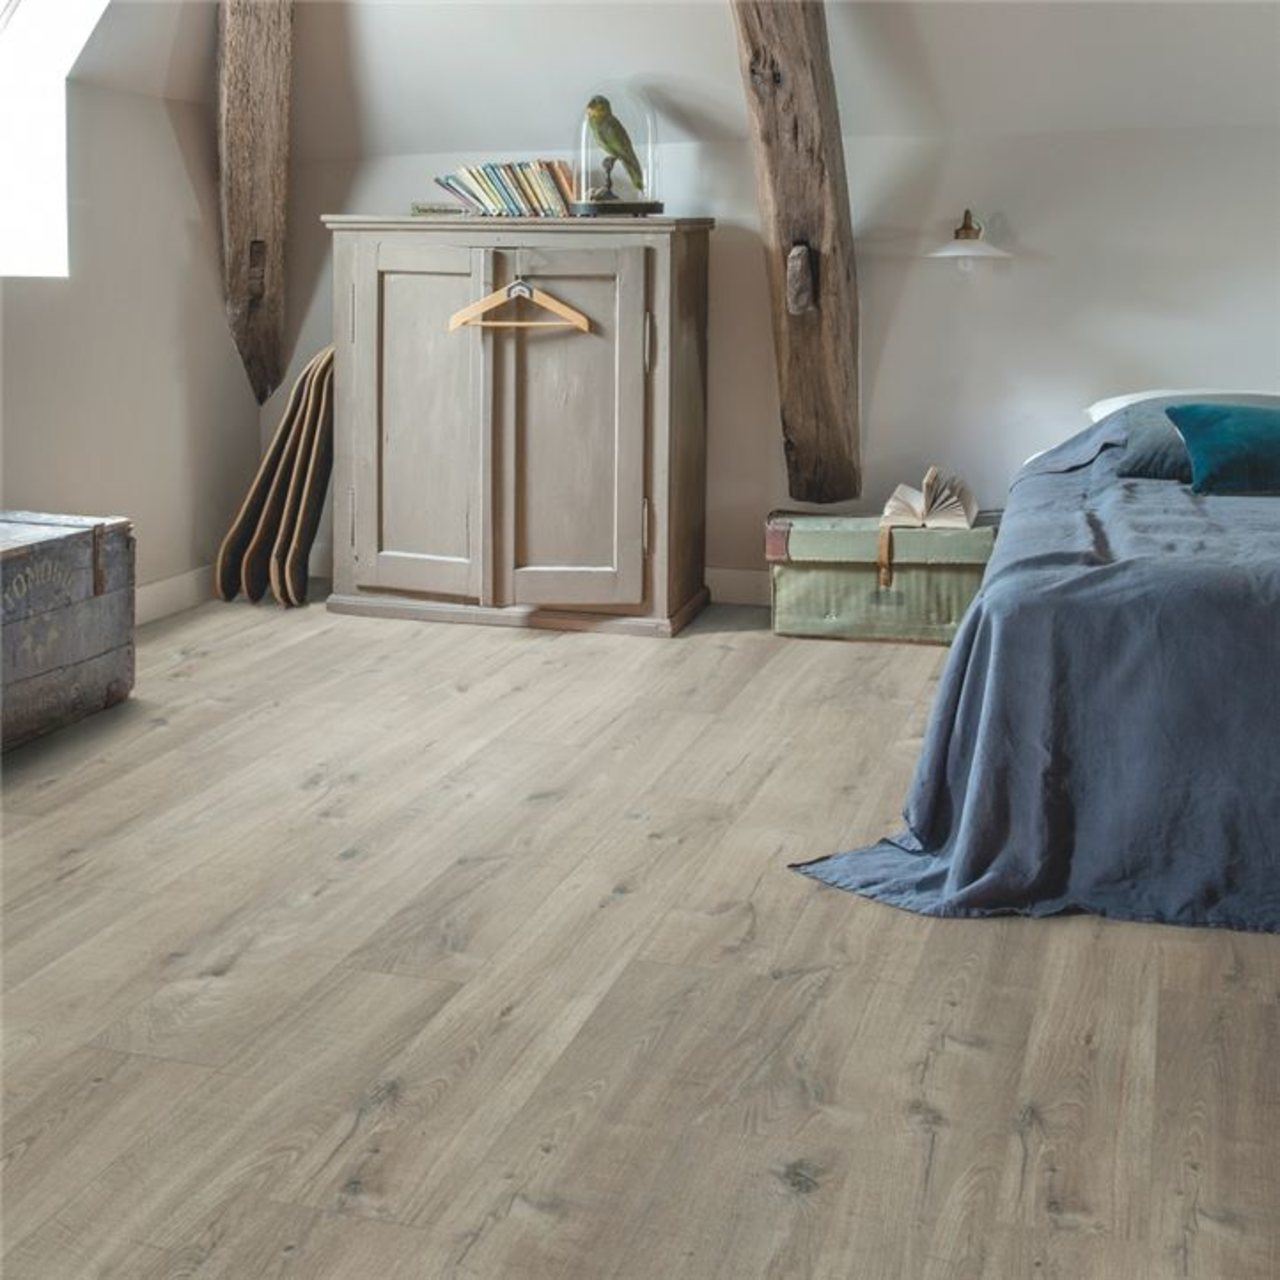 Trendy Vinyl Sheets floor Dubai design 2021